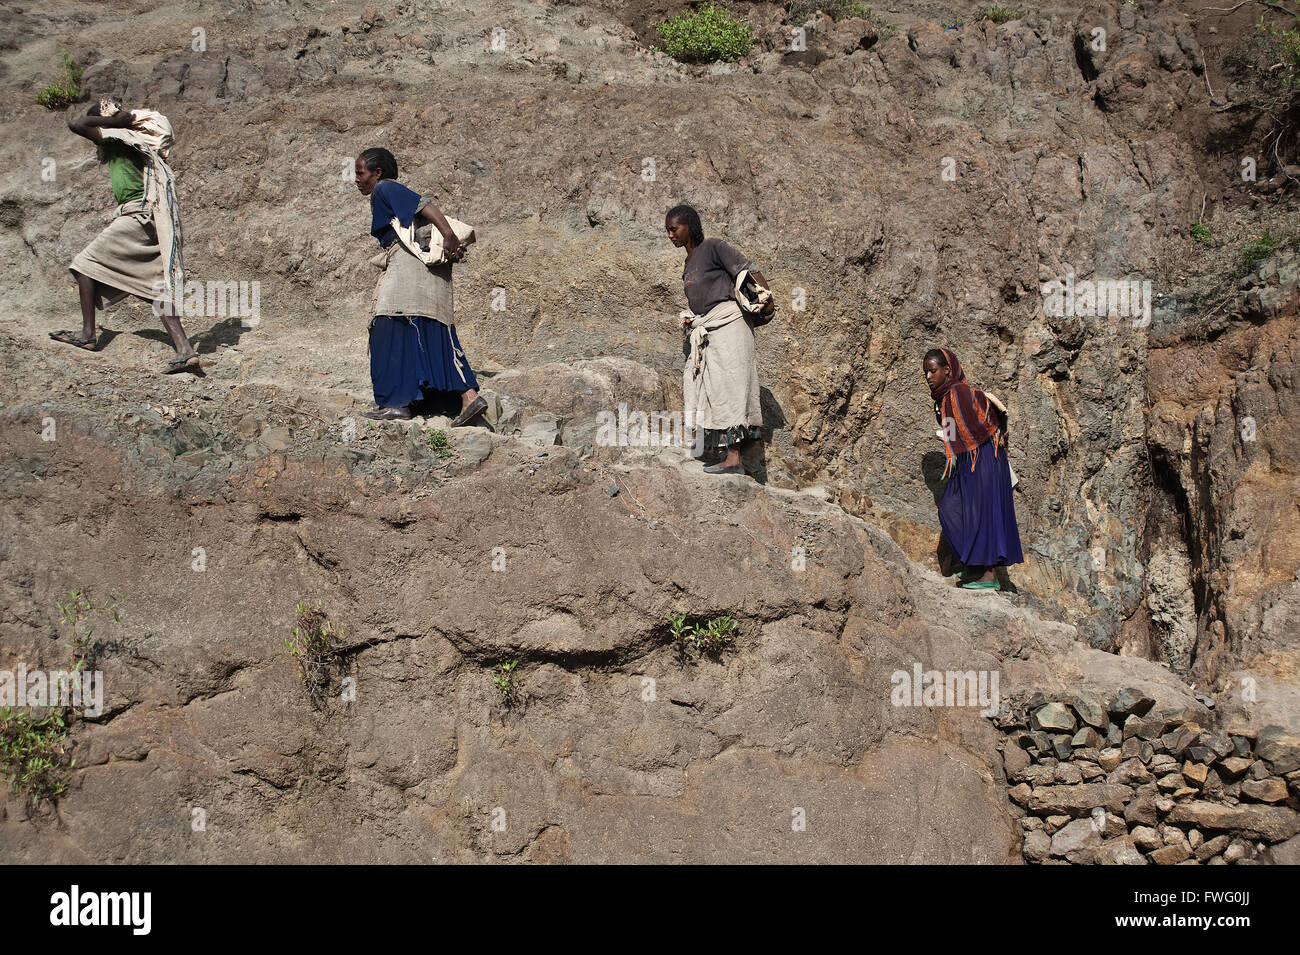 Irrigation works : workers are carrying stones to build an irrigation channel ( Ethiopia) - Stock Image